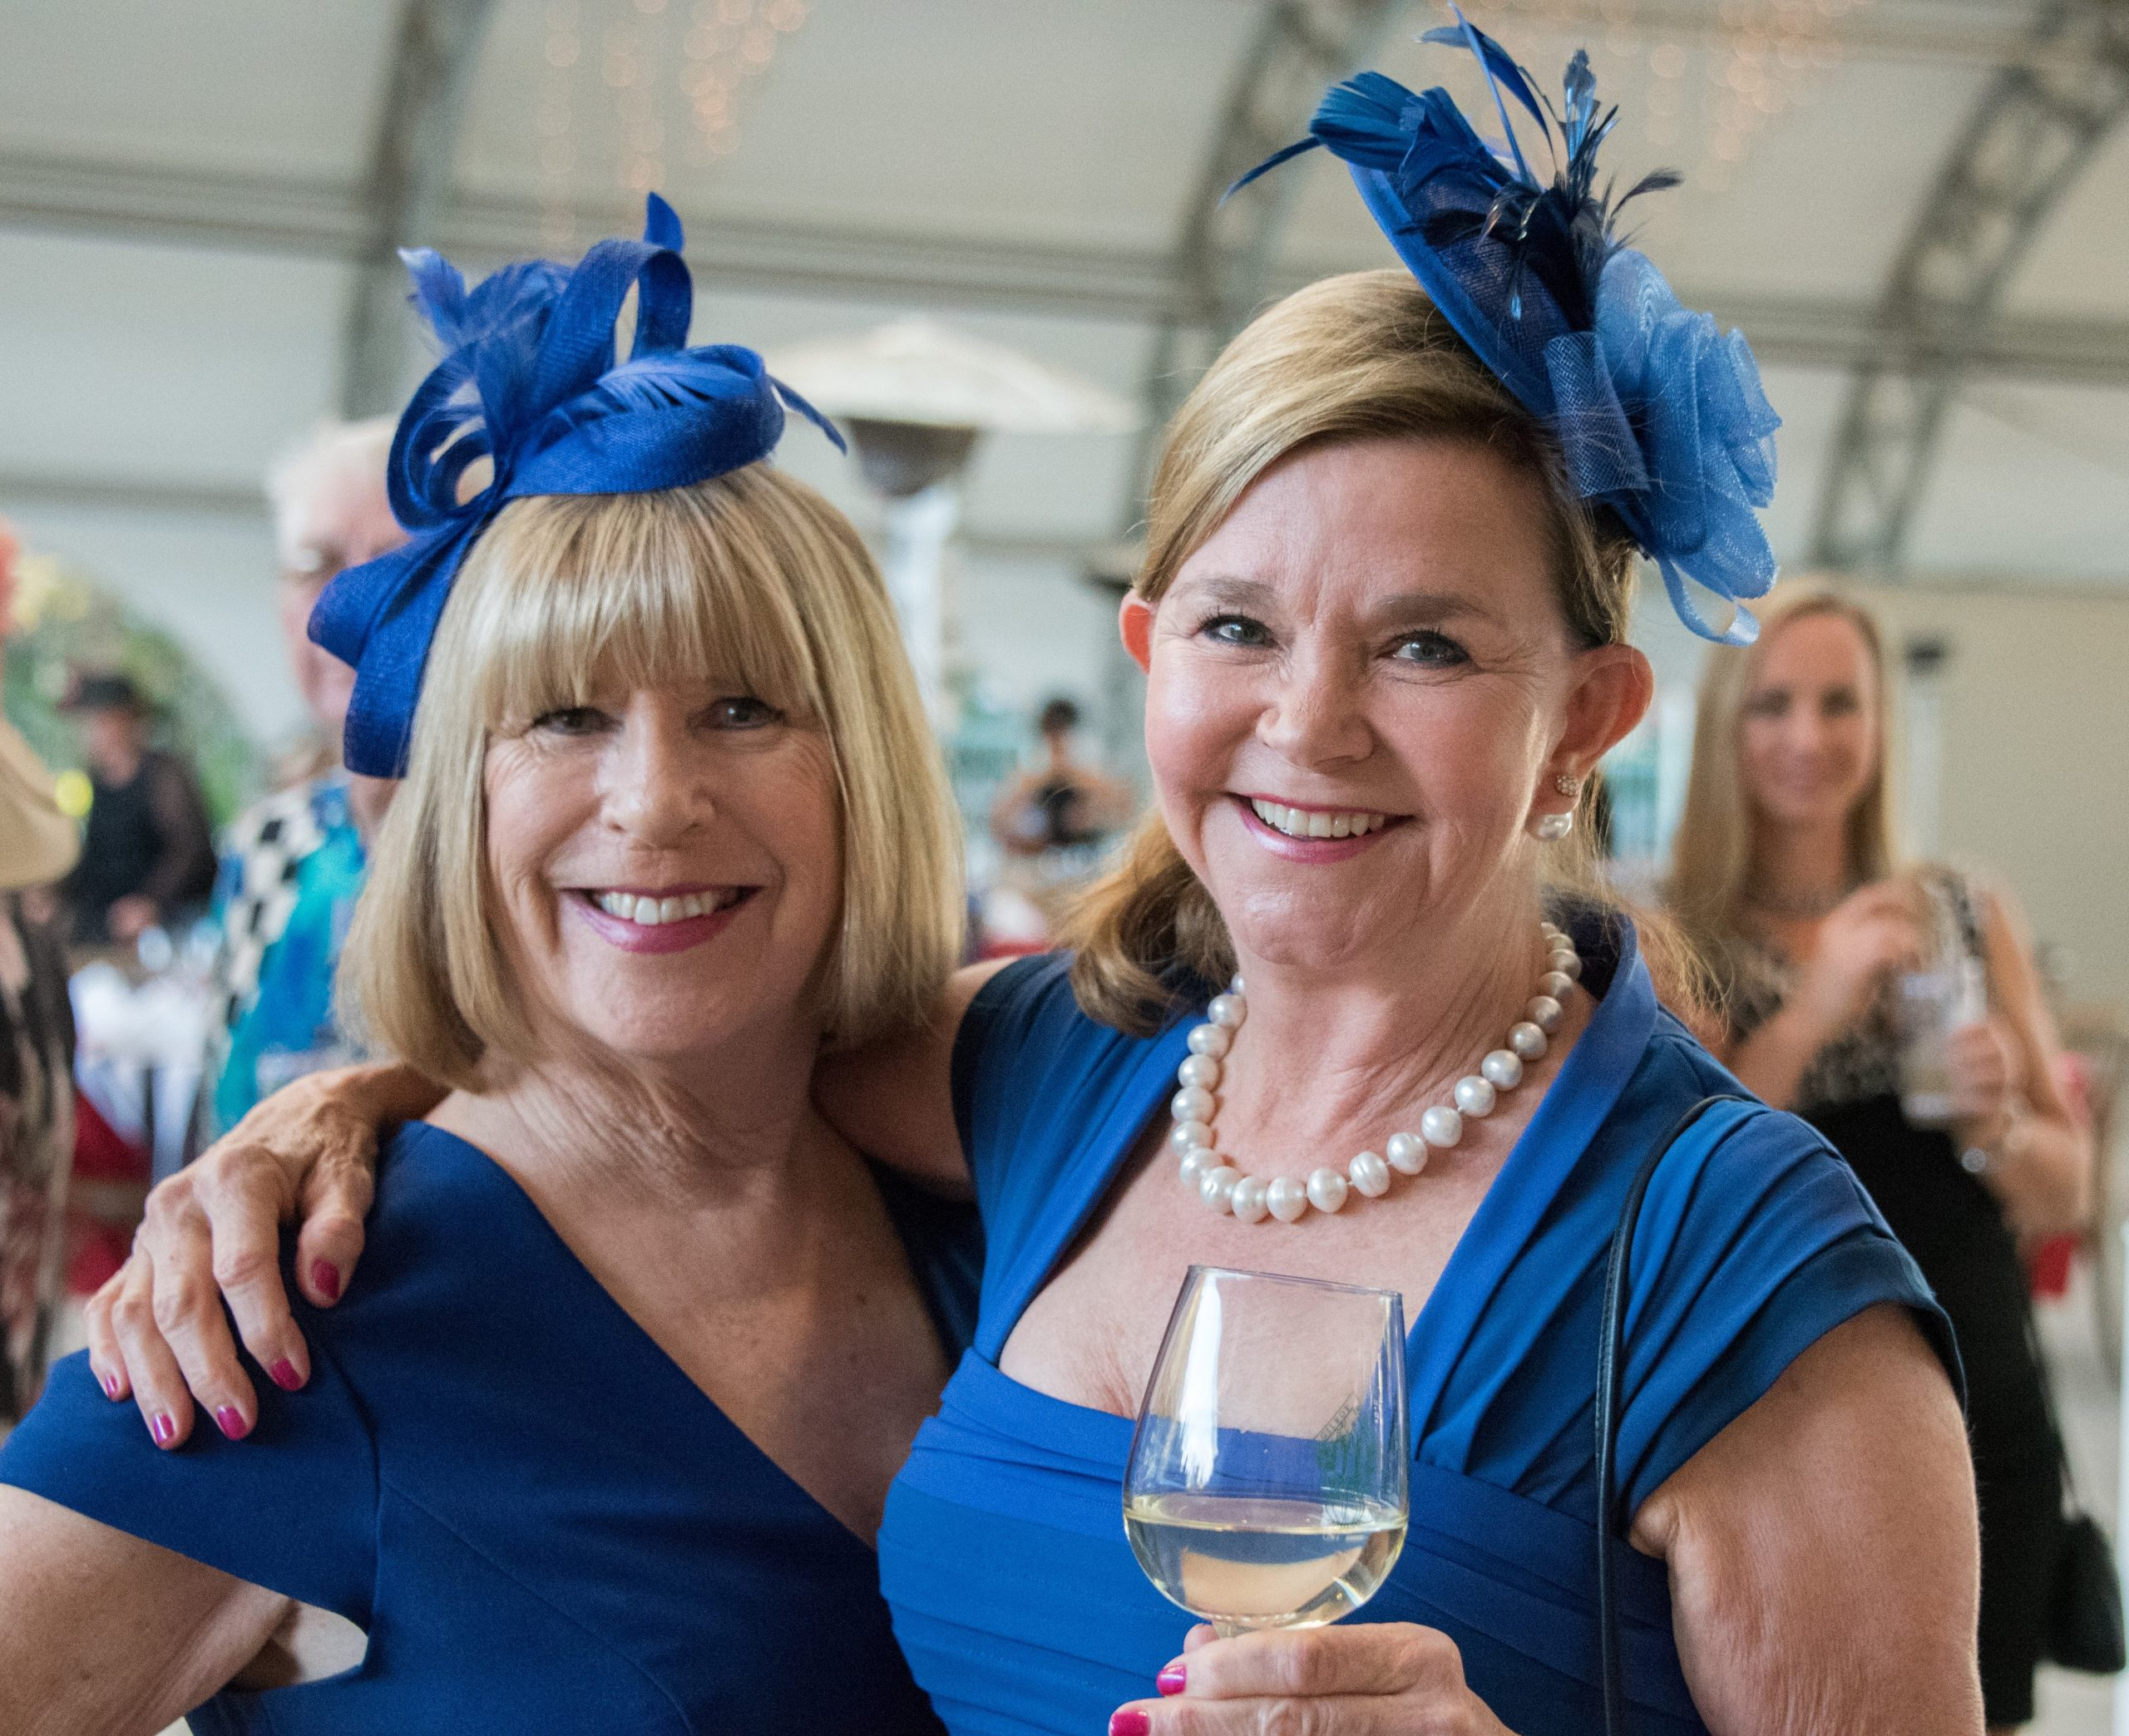 Photo of Donna Pray and Pam Martin in matching fascinators at